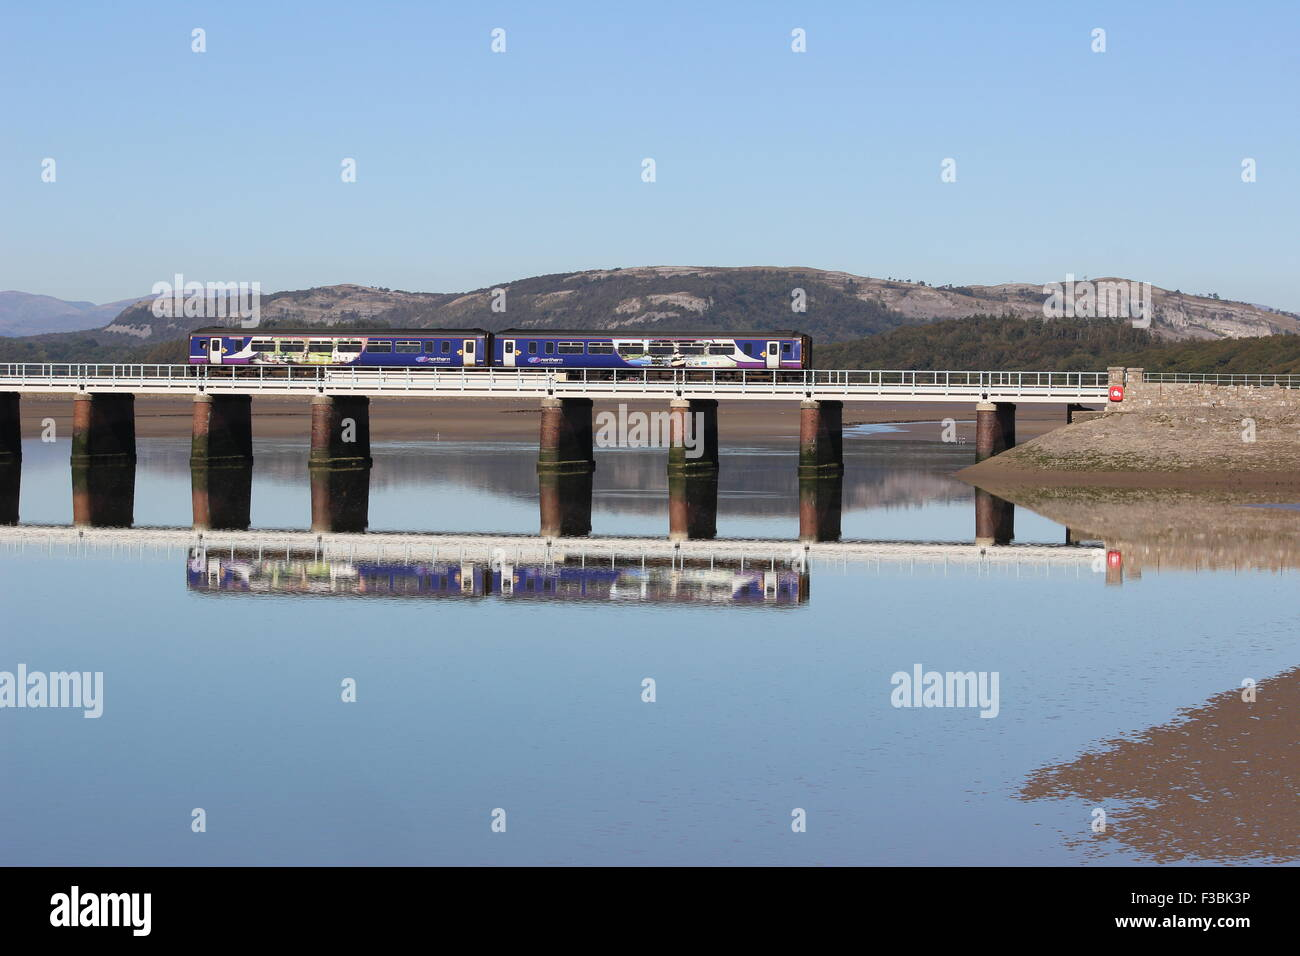 Diesel multiple unit train in Northern livery crossing Arnside Viaduct at high tide with reflection in the River - Stock Image